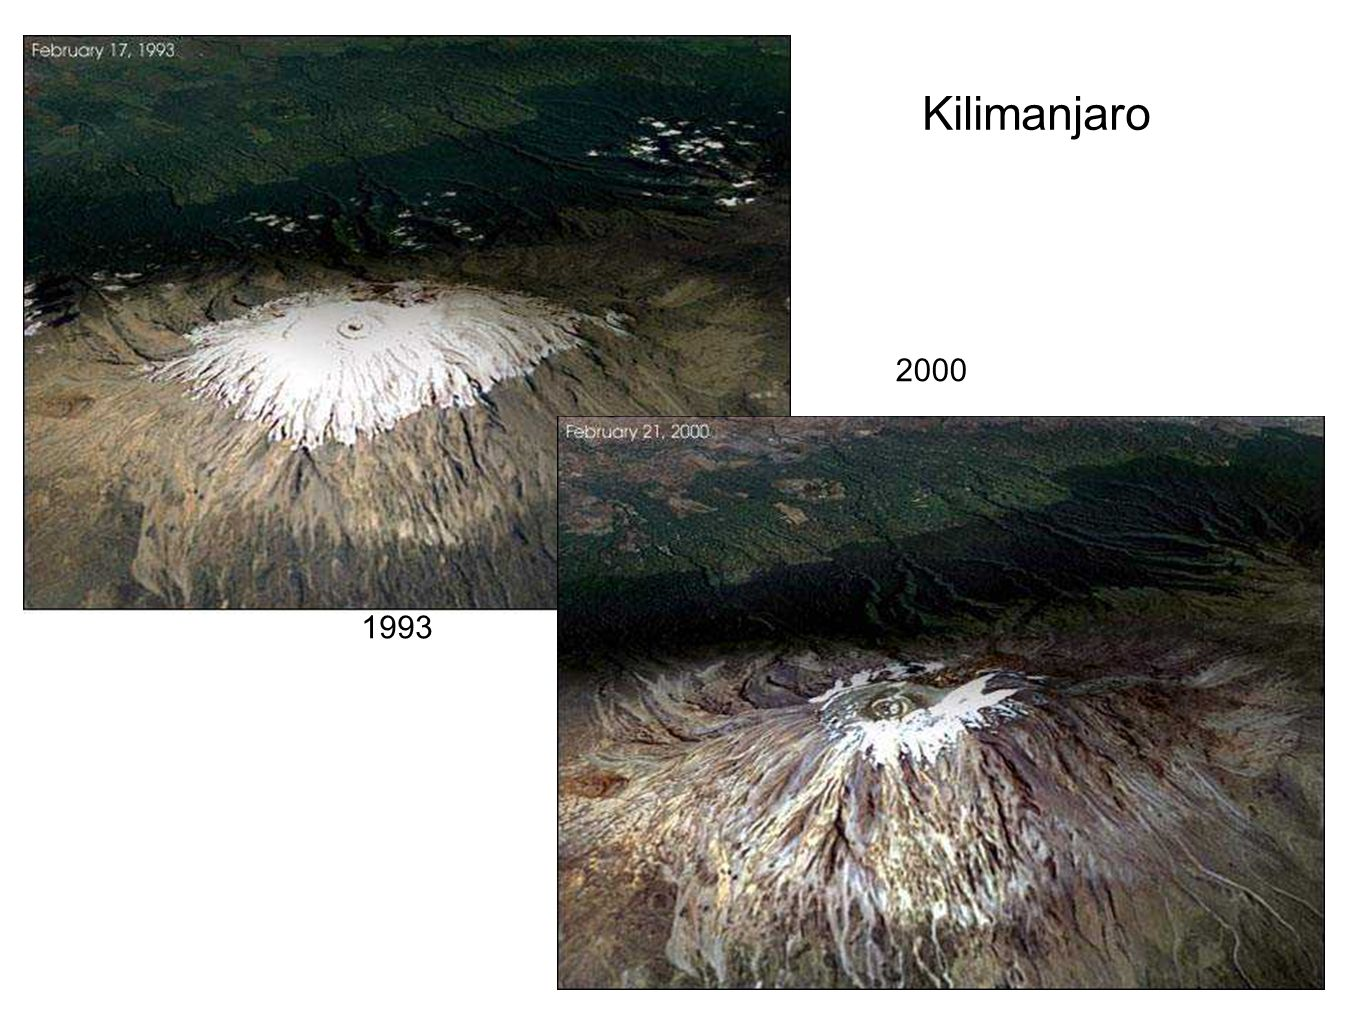 Kilimanjaro 2000 Images of Kilimanjaro taken from the shuttle in 1993 and in 2000. 1993 25